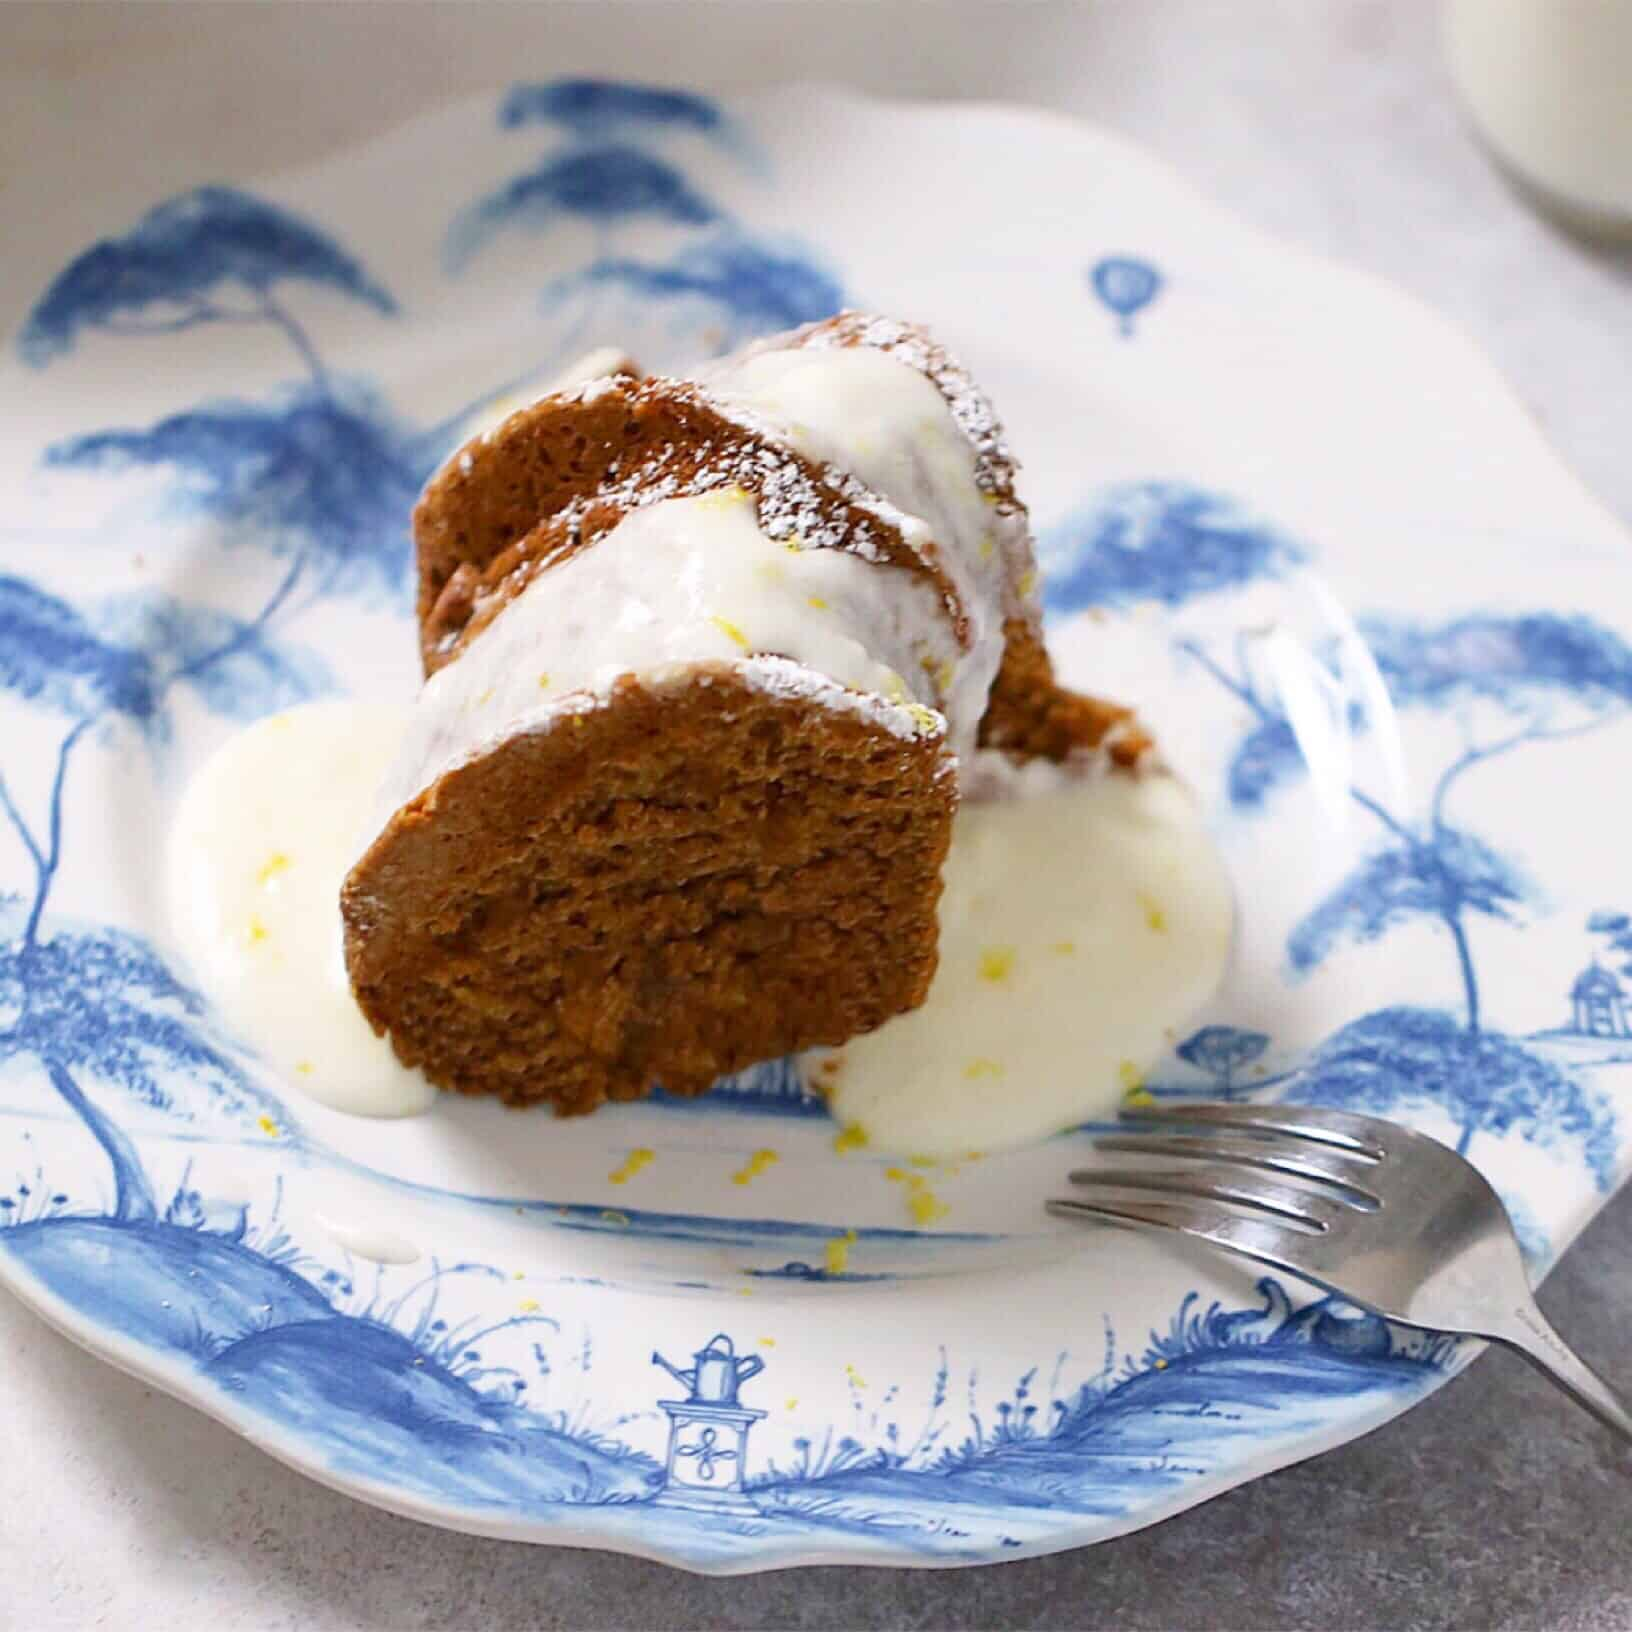 Grain-Free Molasses Cake with Lemon Frosting